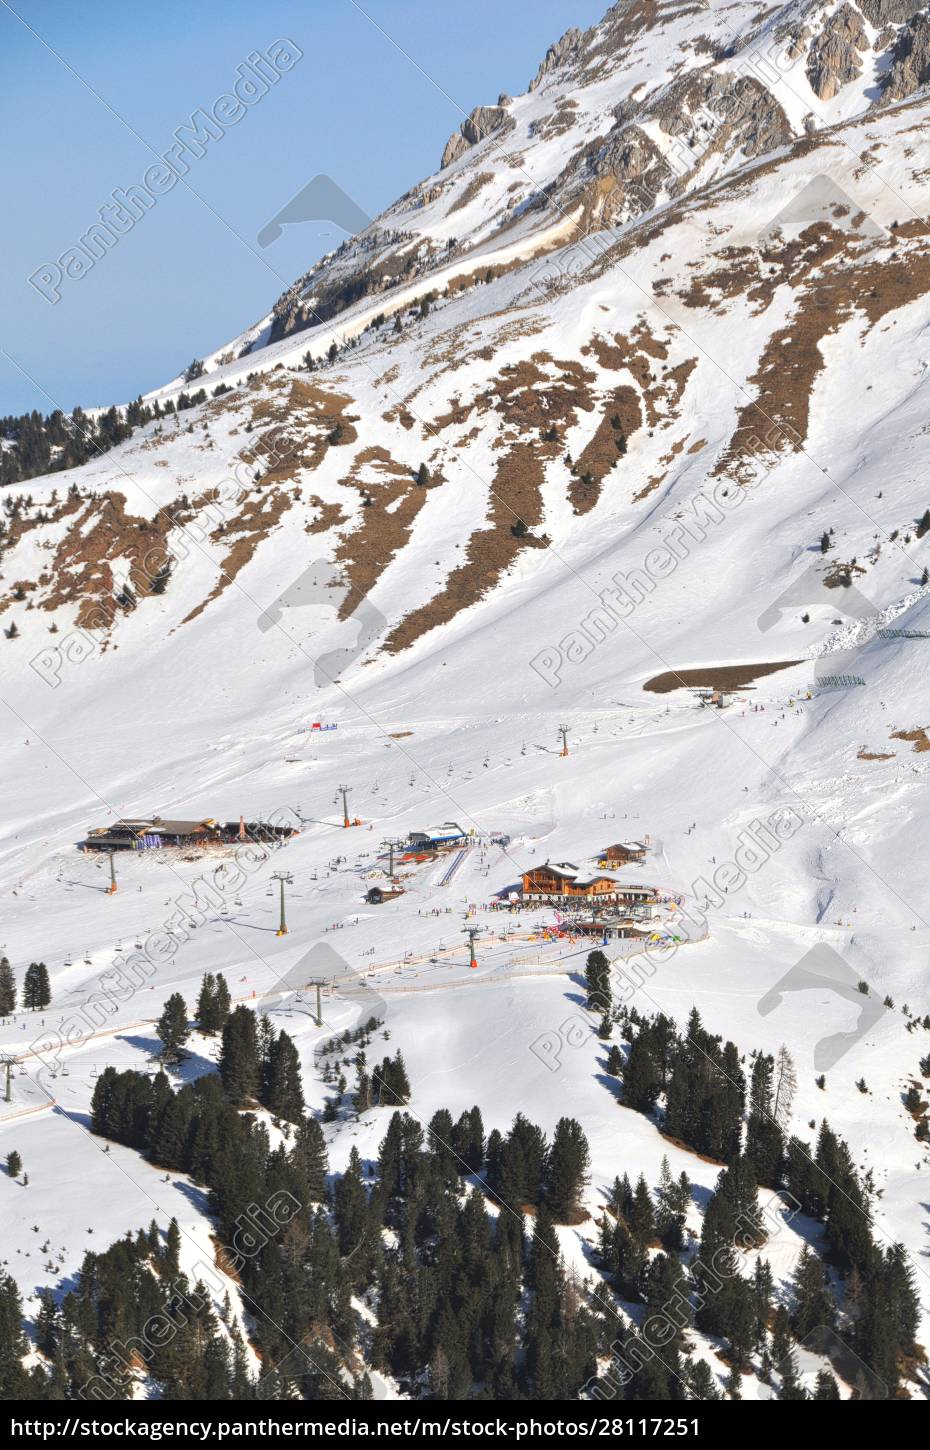 skiing, insouthern, tyrol - 28117251